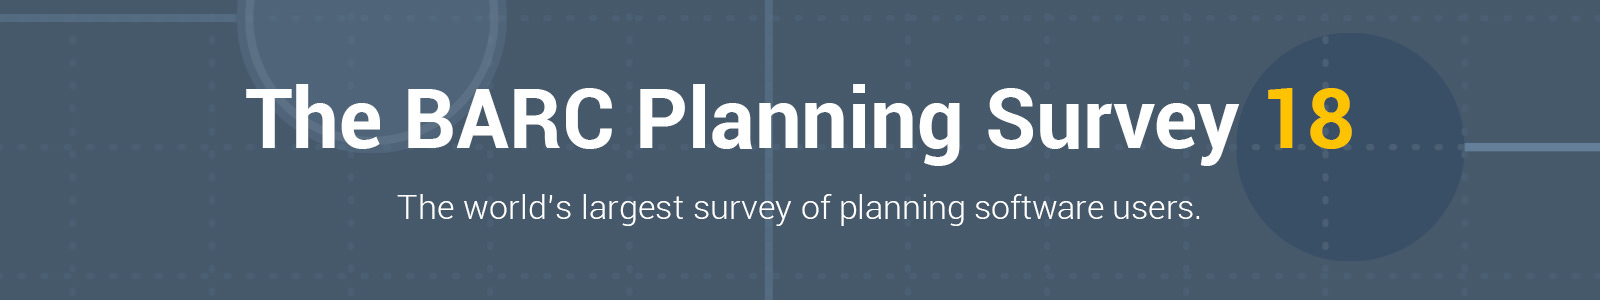 BARC - The Planning Survey 2018